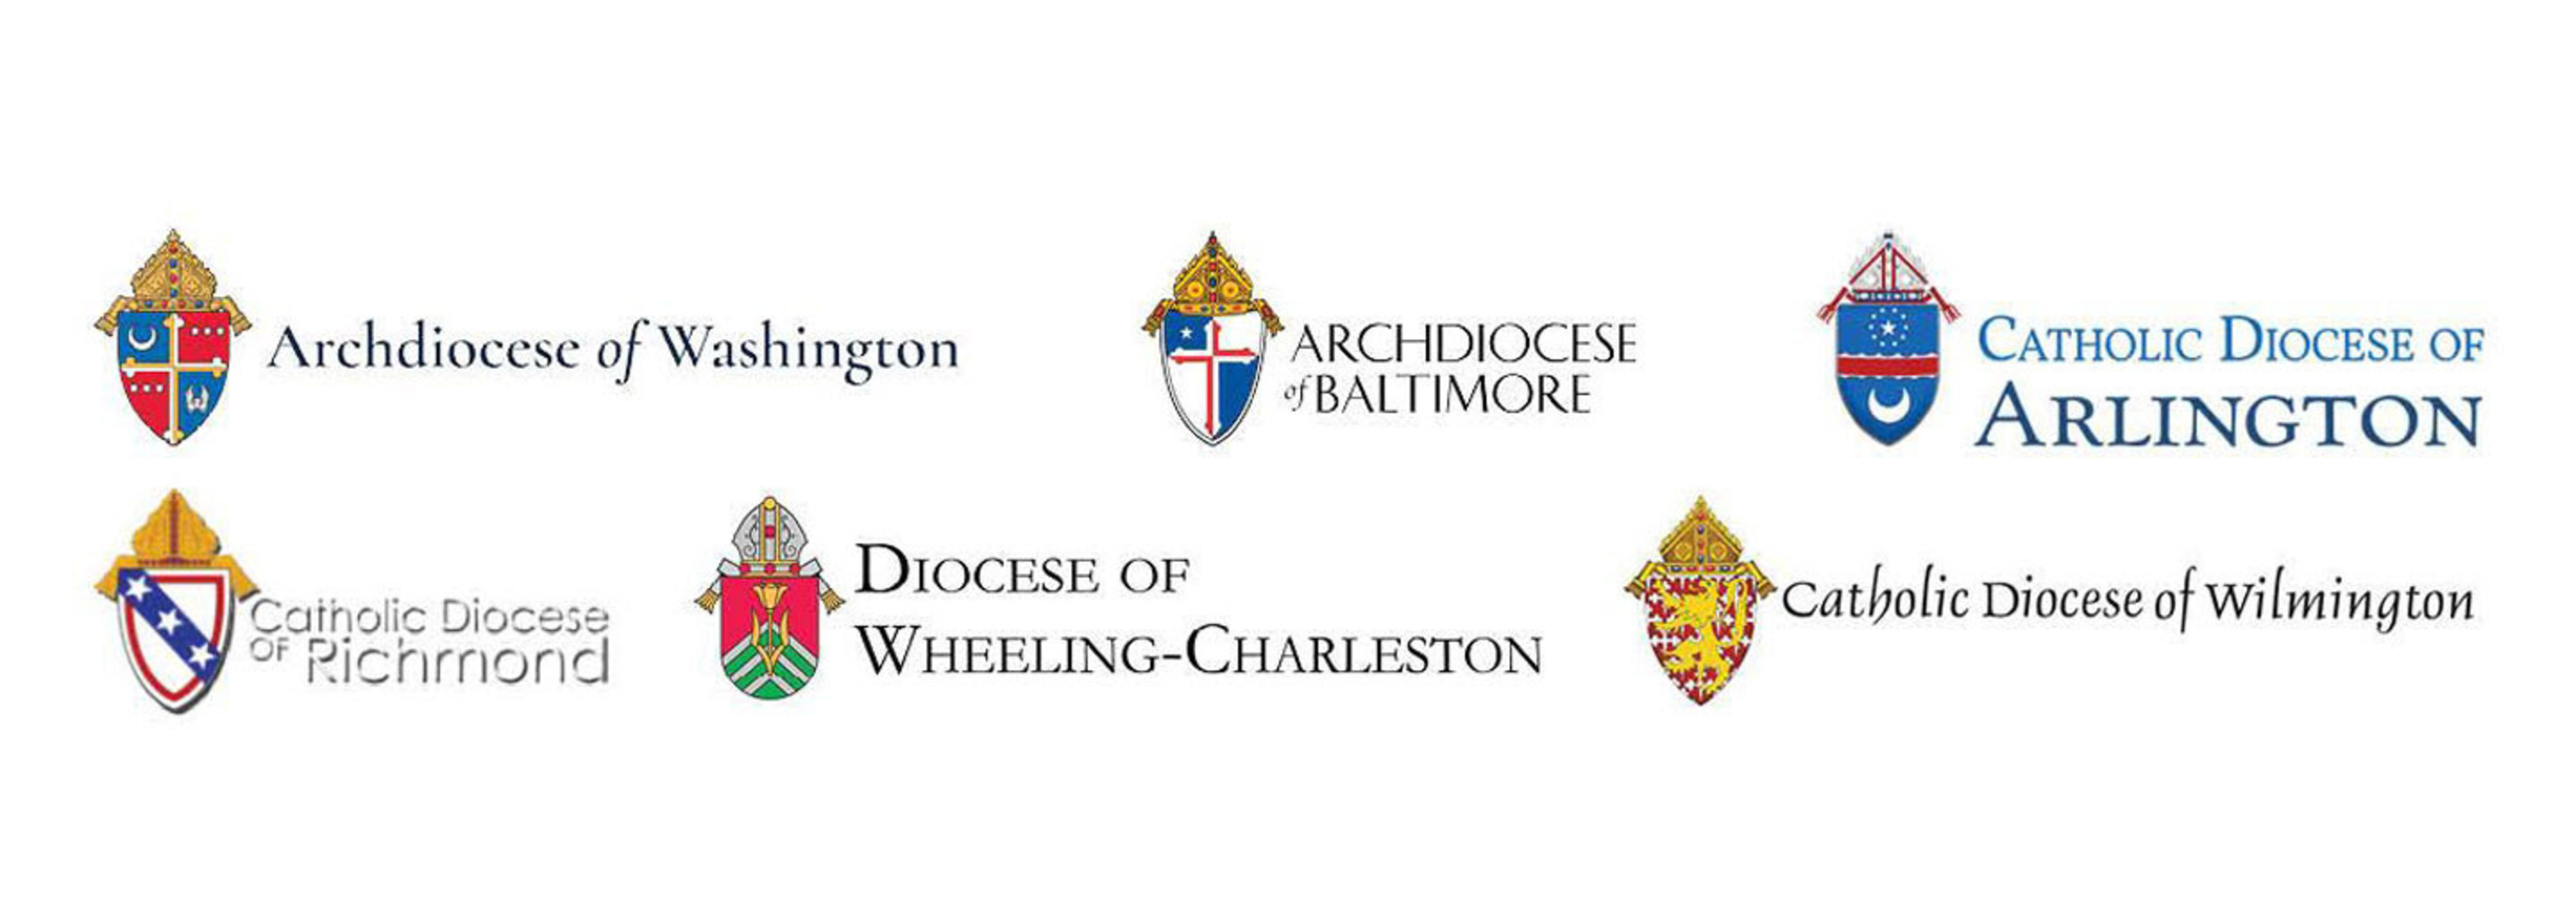 Archdiocese Images